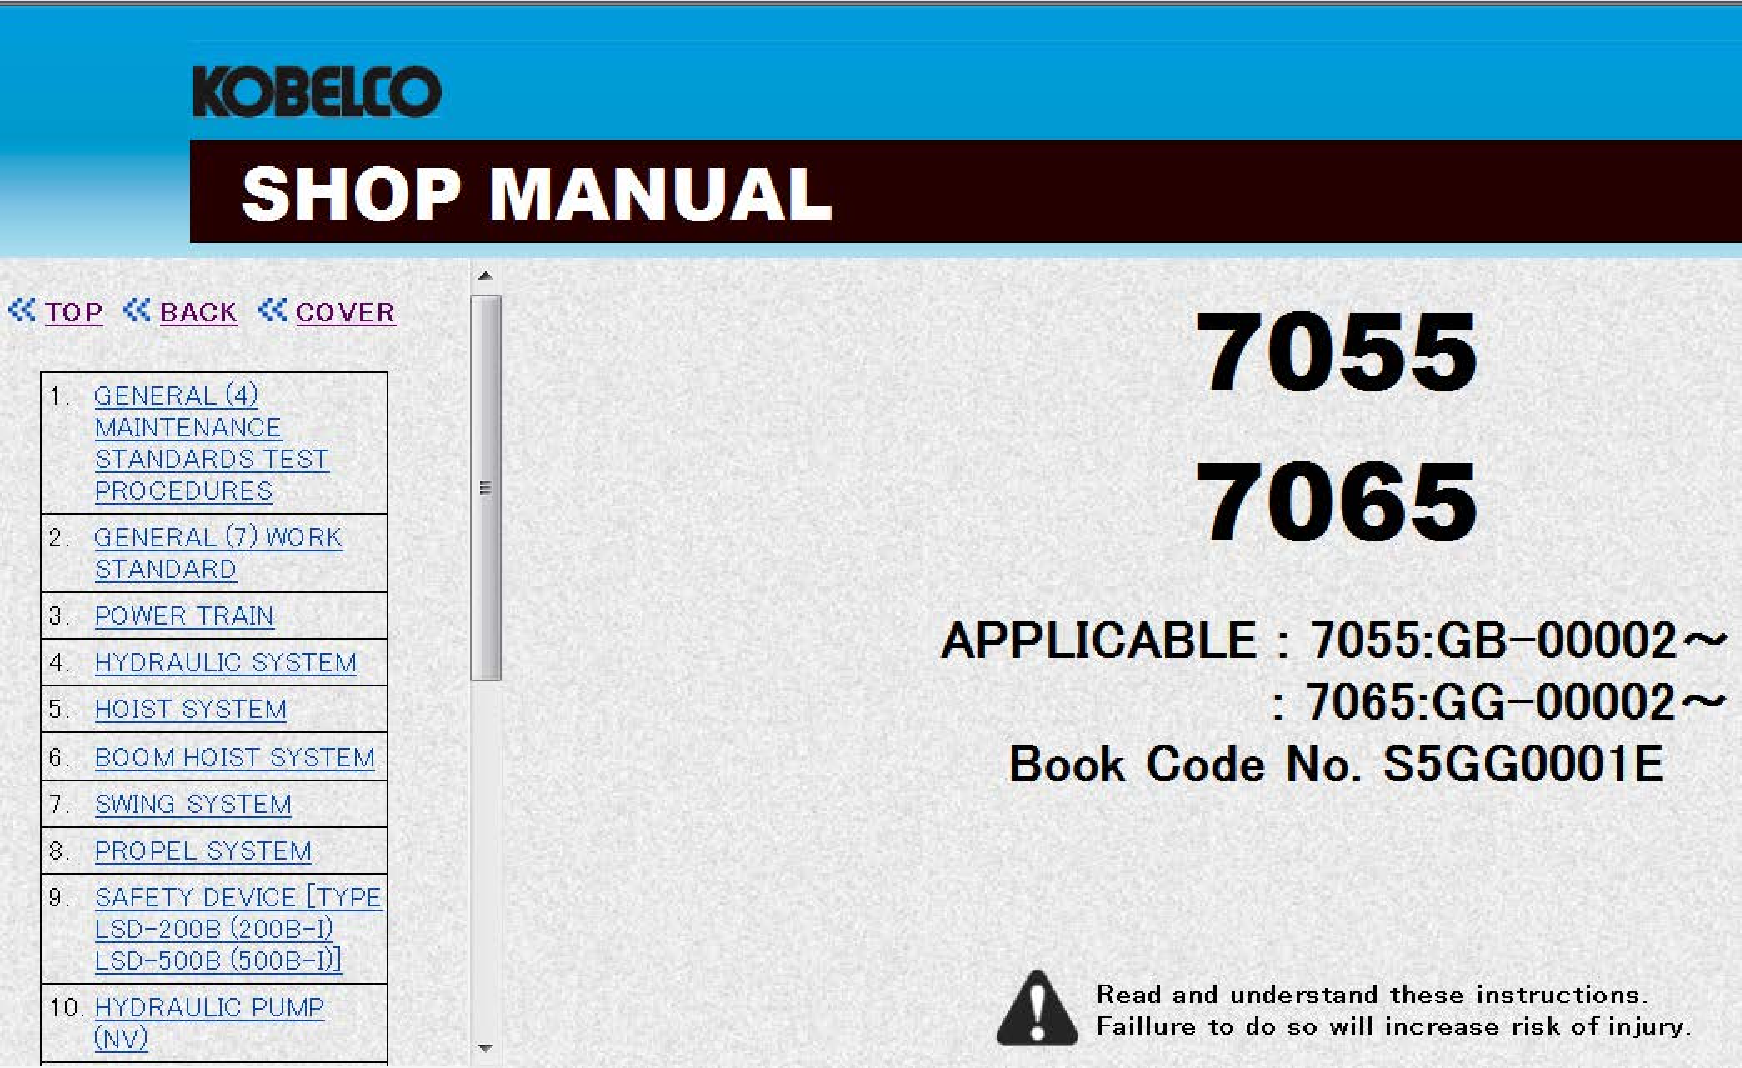 Kobelco 7055 Manual Hydraulic Systems Manual Repair Manuals